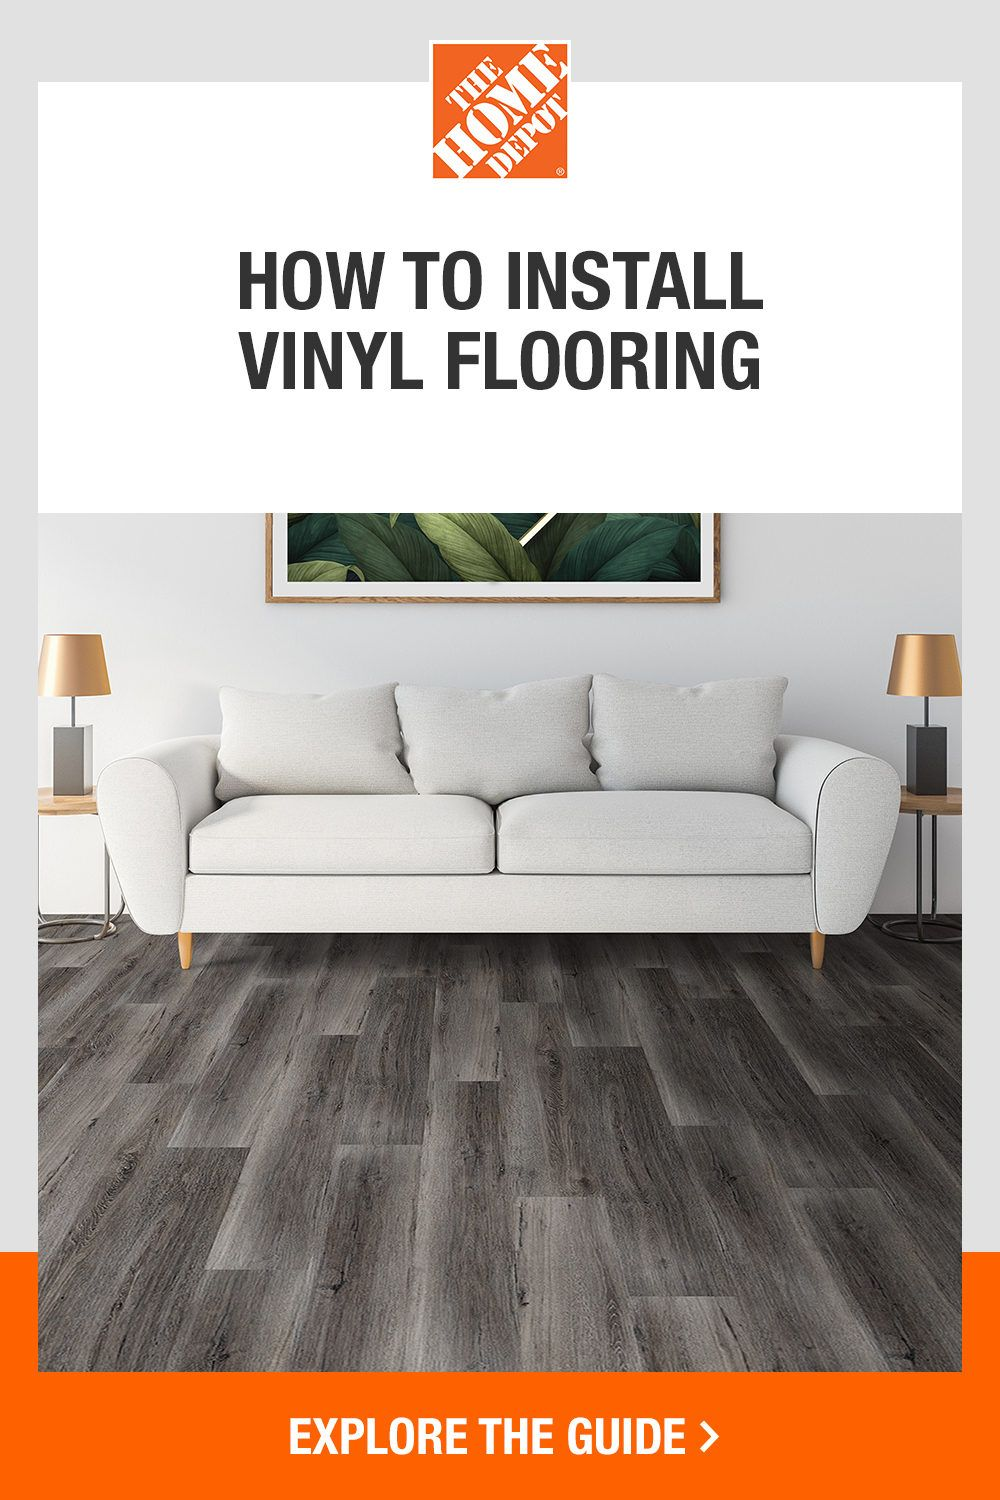 Enjoy the look of real wood with vinyl flooring from The Home Depot. Vinyl flooring is the perfect option to refresh your floors without the cost of installation. This product is versatile, durable, and easy to install—making it a great option for home-improvers. Tap the guide to explore the how-to basics and tools you will need, all available at The Home Depot.